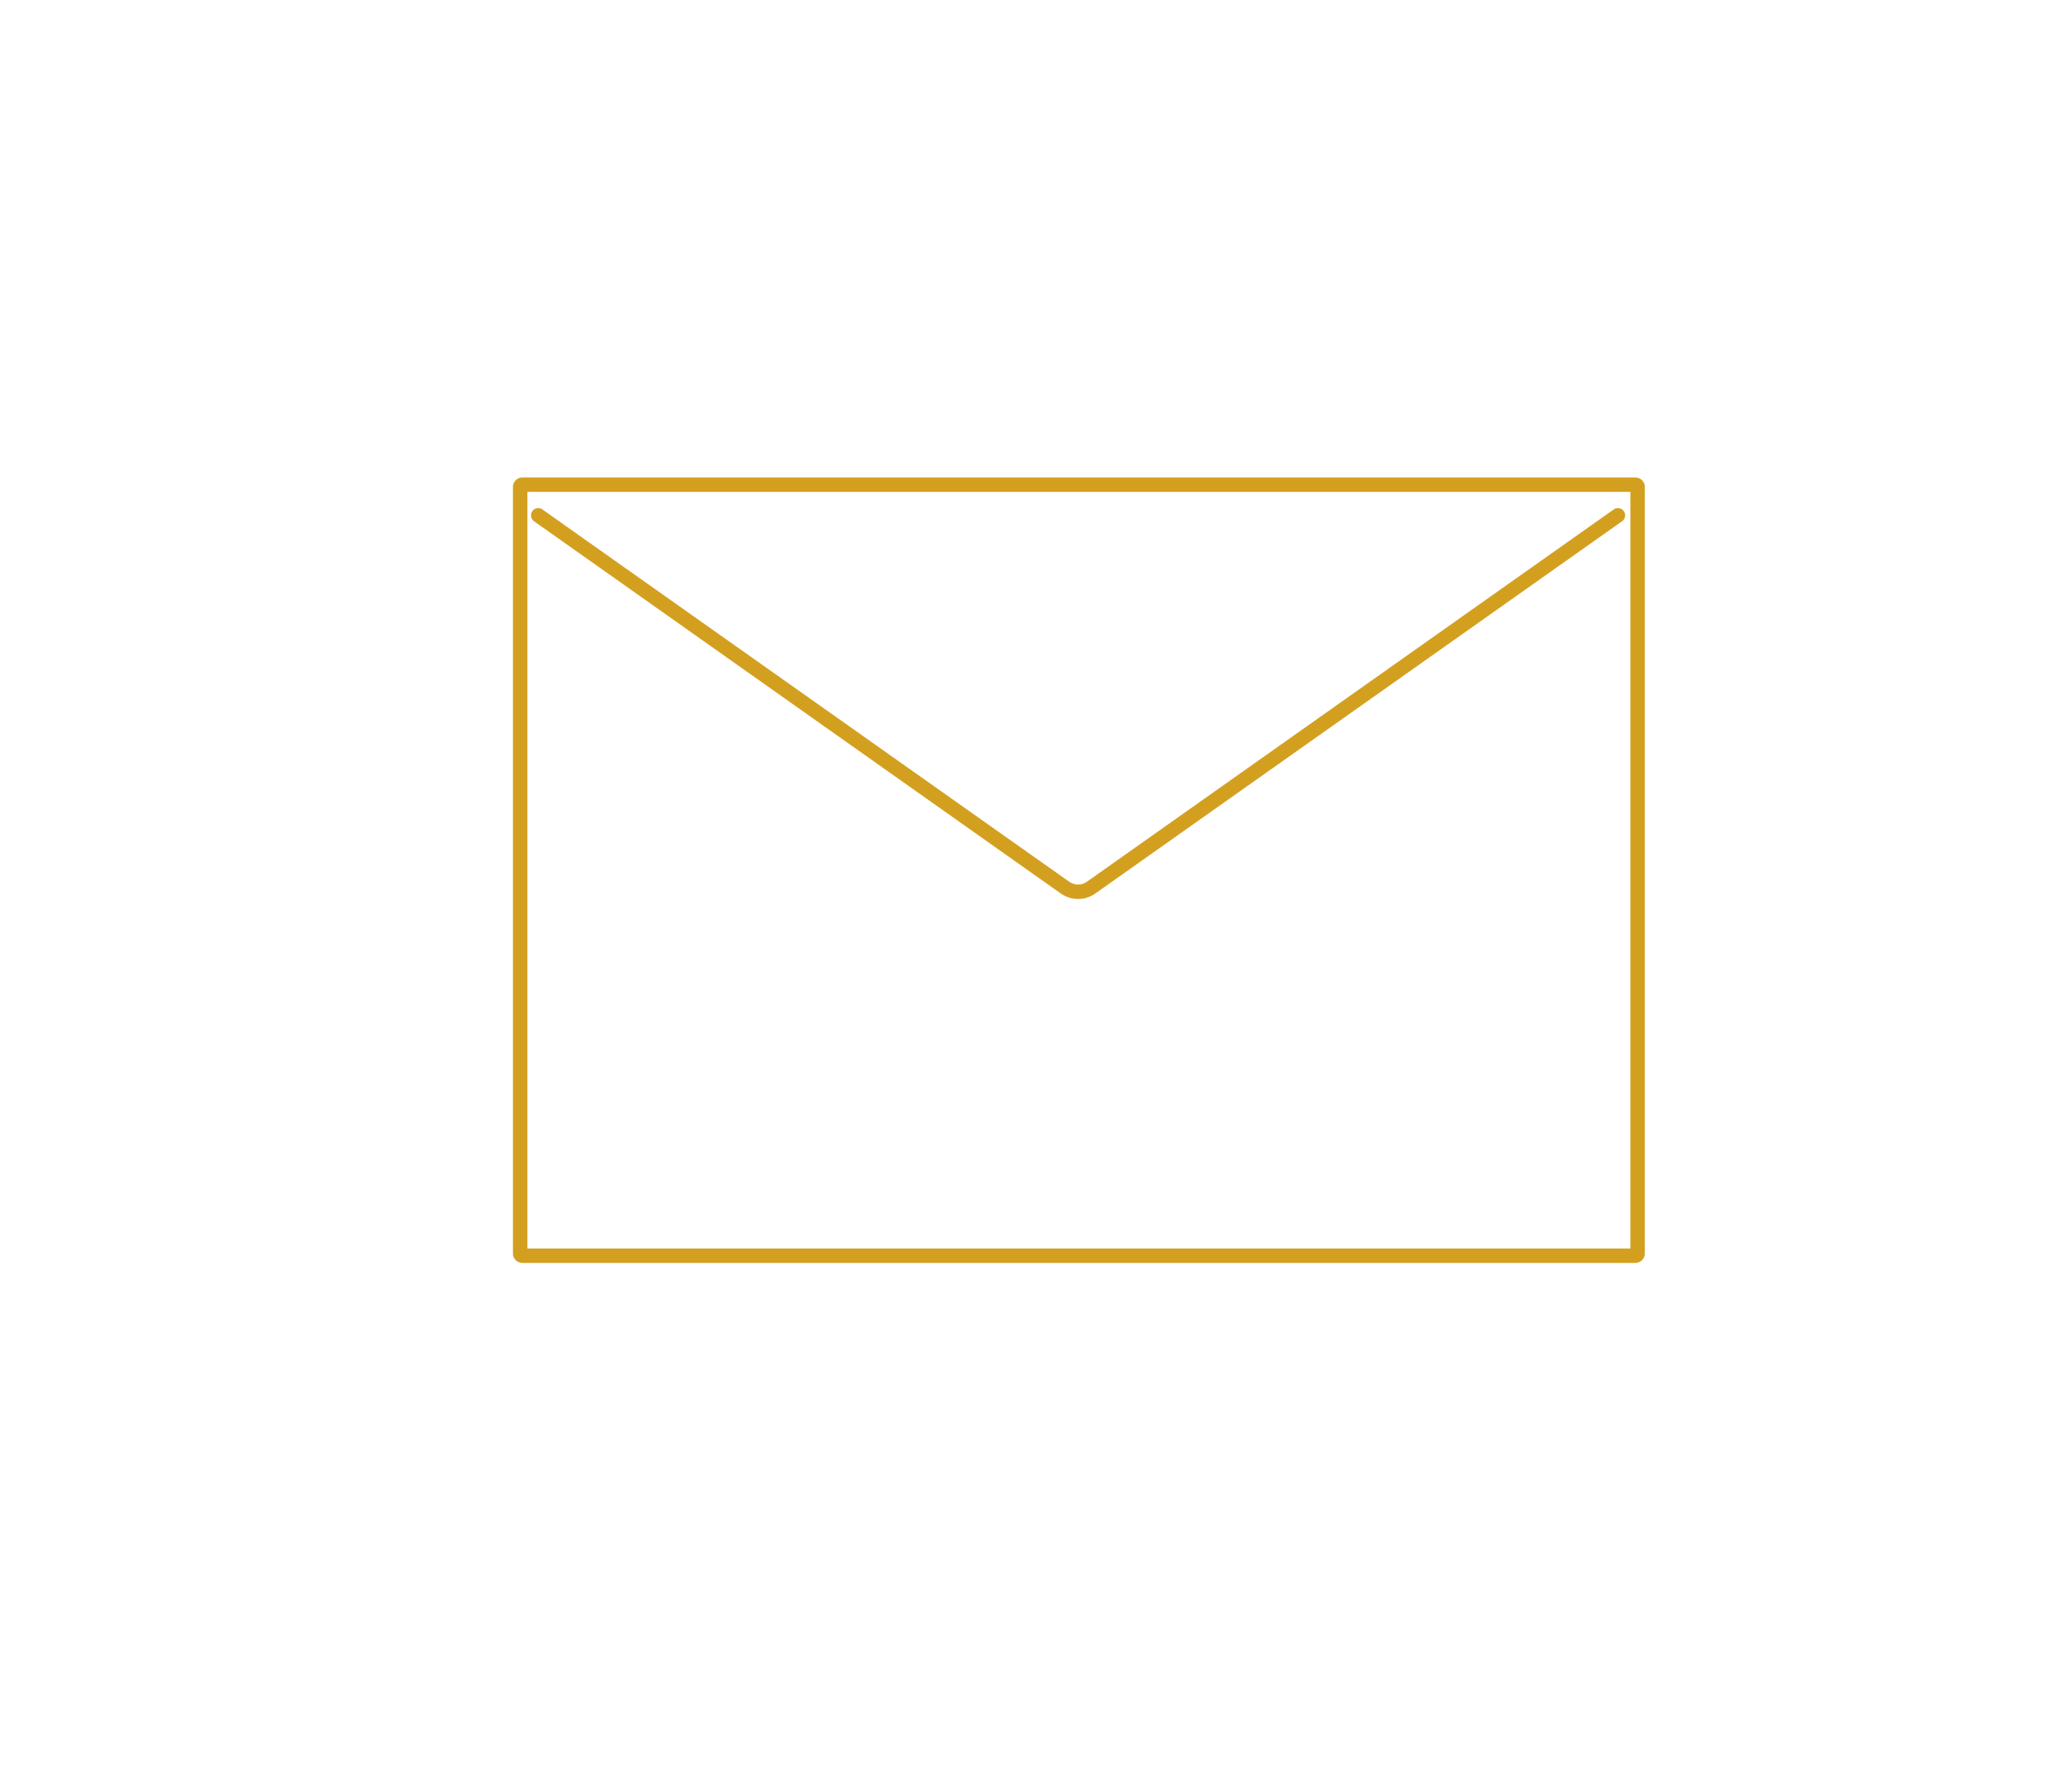 Contact Icons-07.png